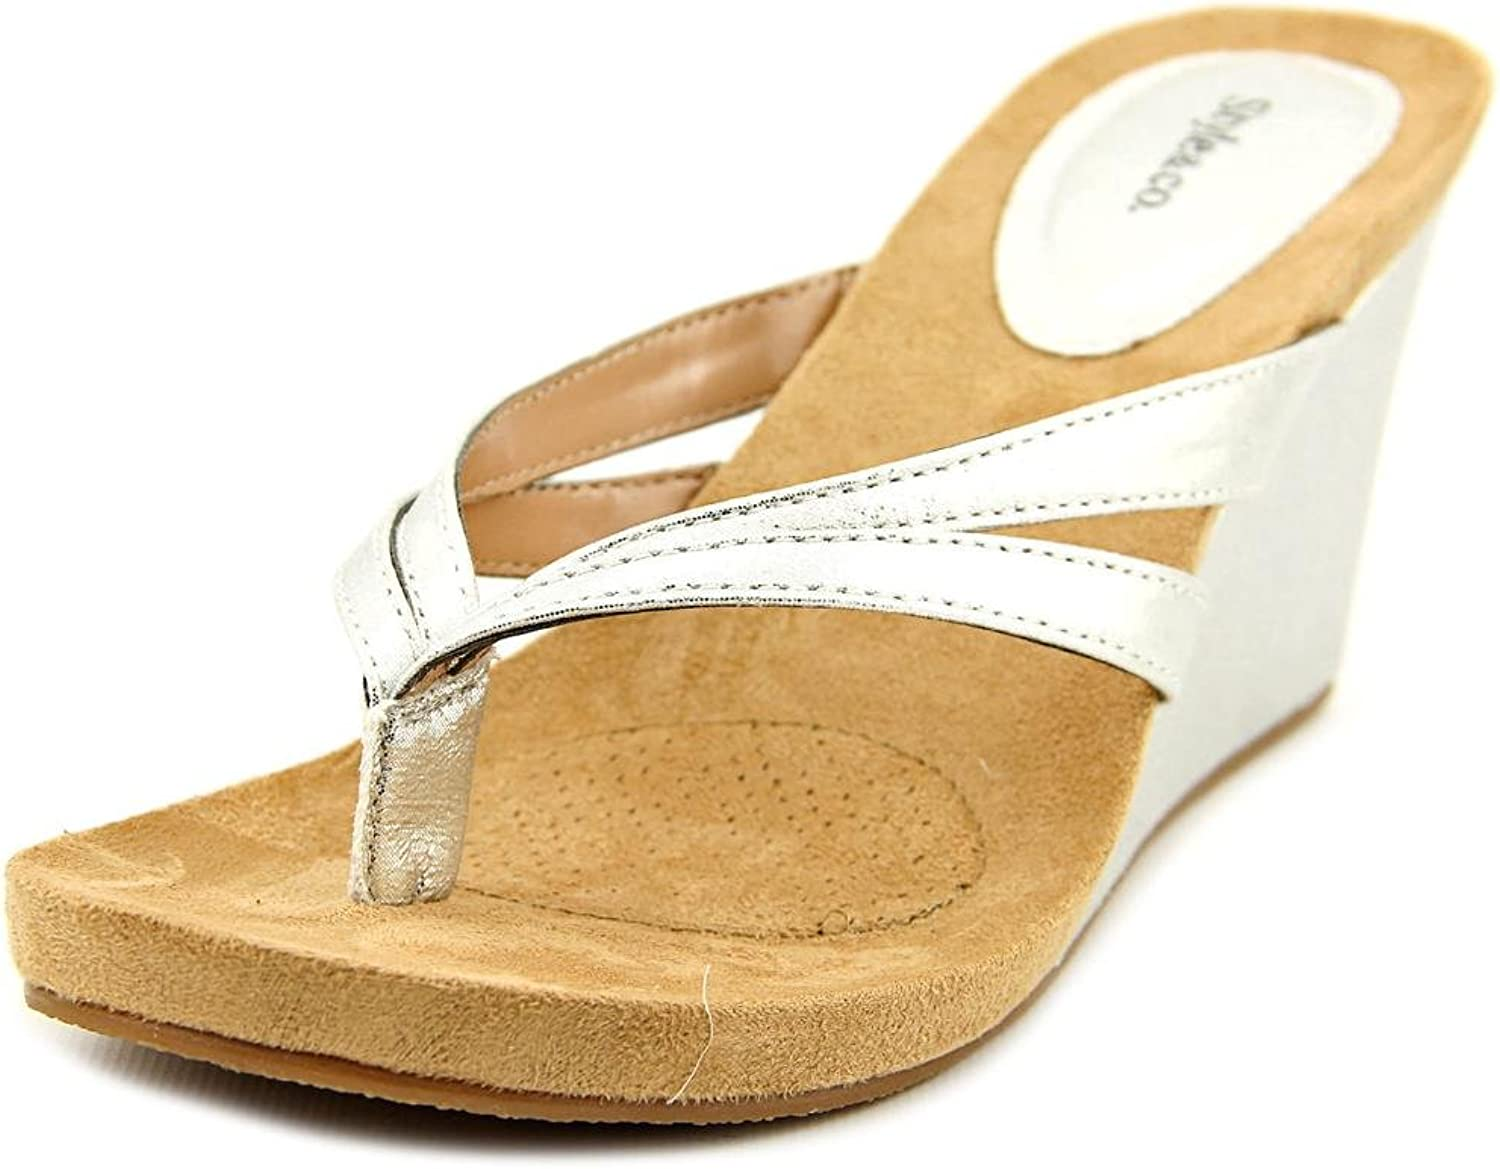 Style & Co. Womens Cassiee Split Toe Casual Platform Sandals, Silver, Size 9.0 US